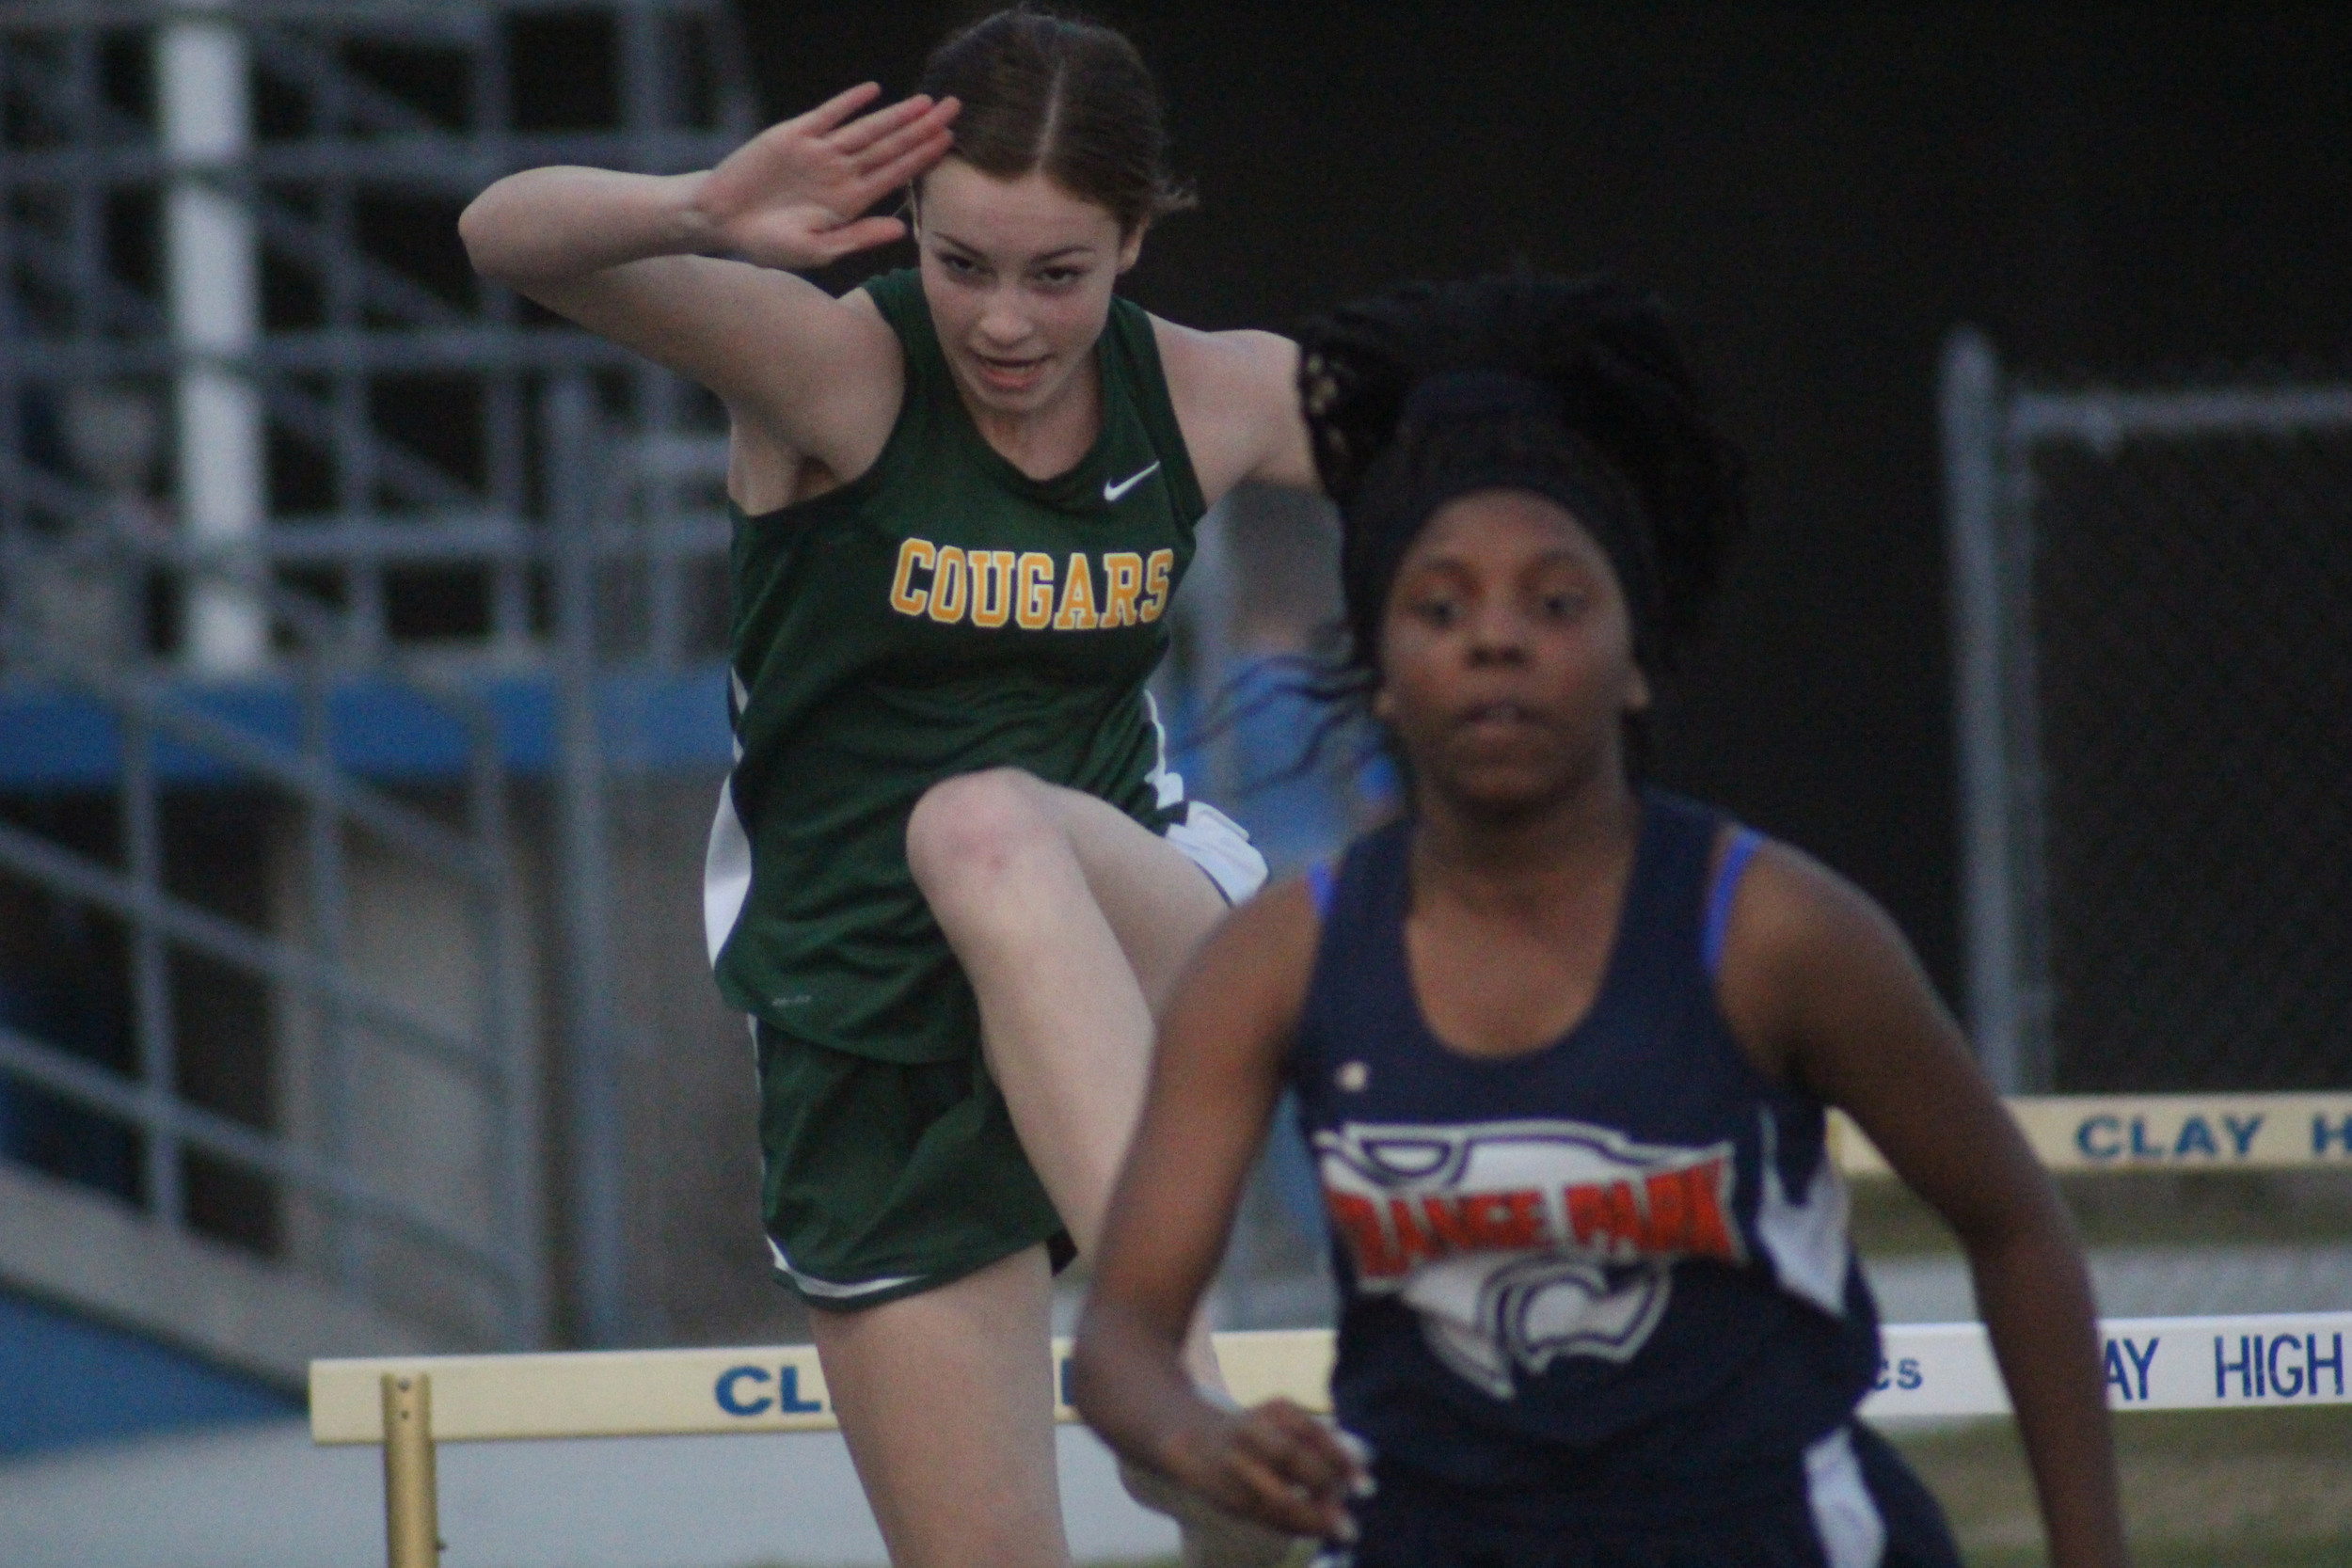 Green Cove Springs hurdler Sarah Zima will be competing at the Clay County Junior High Track and Field Championships on Fri., April 15 at Orange Park High School.